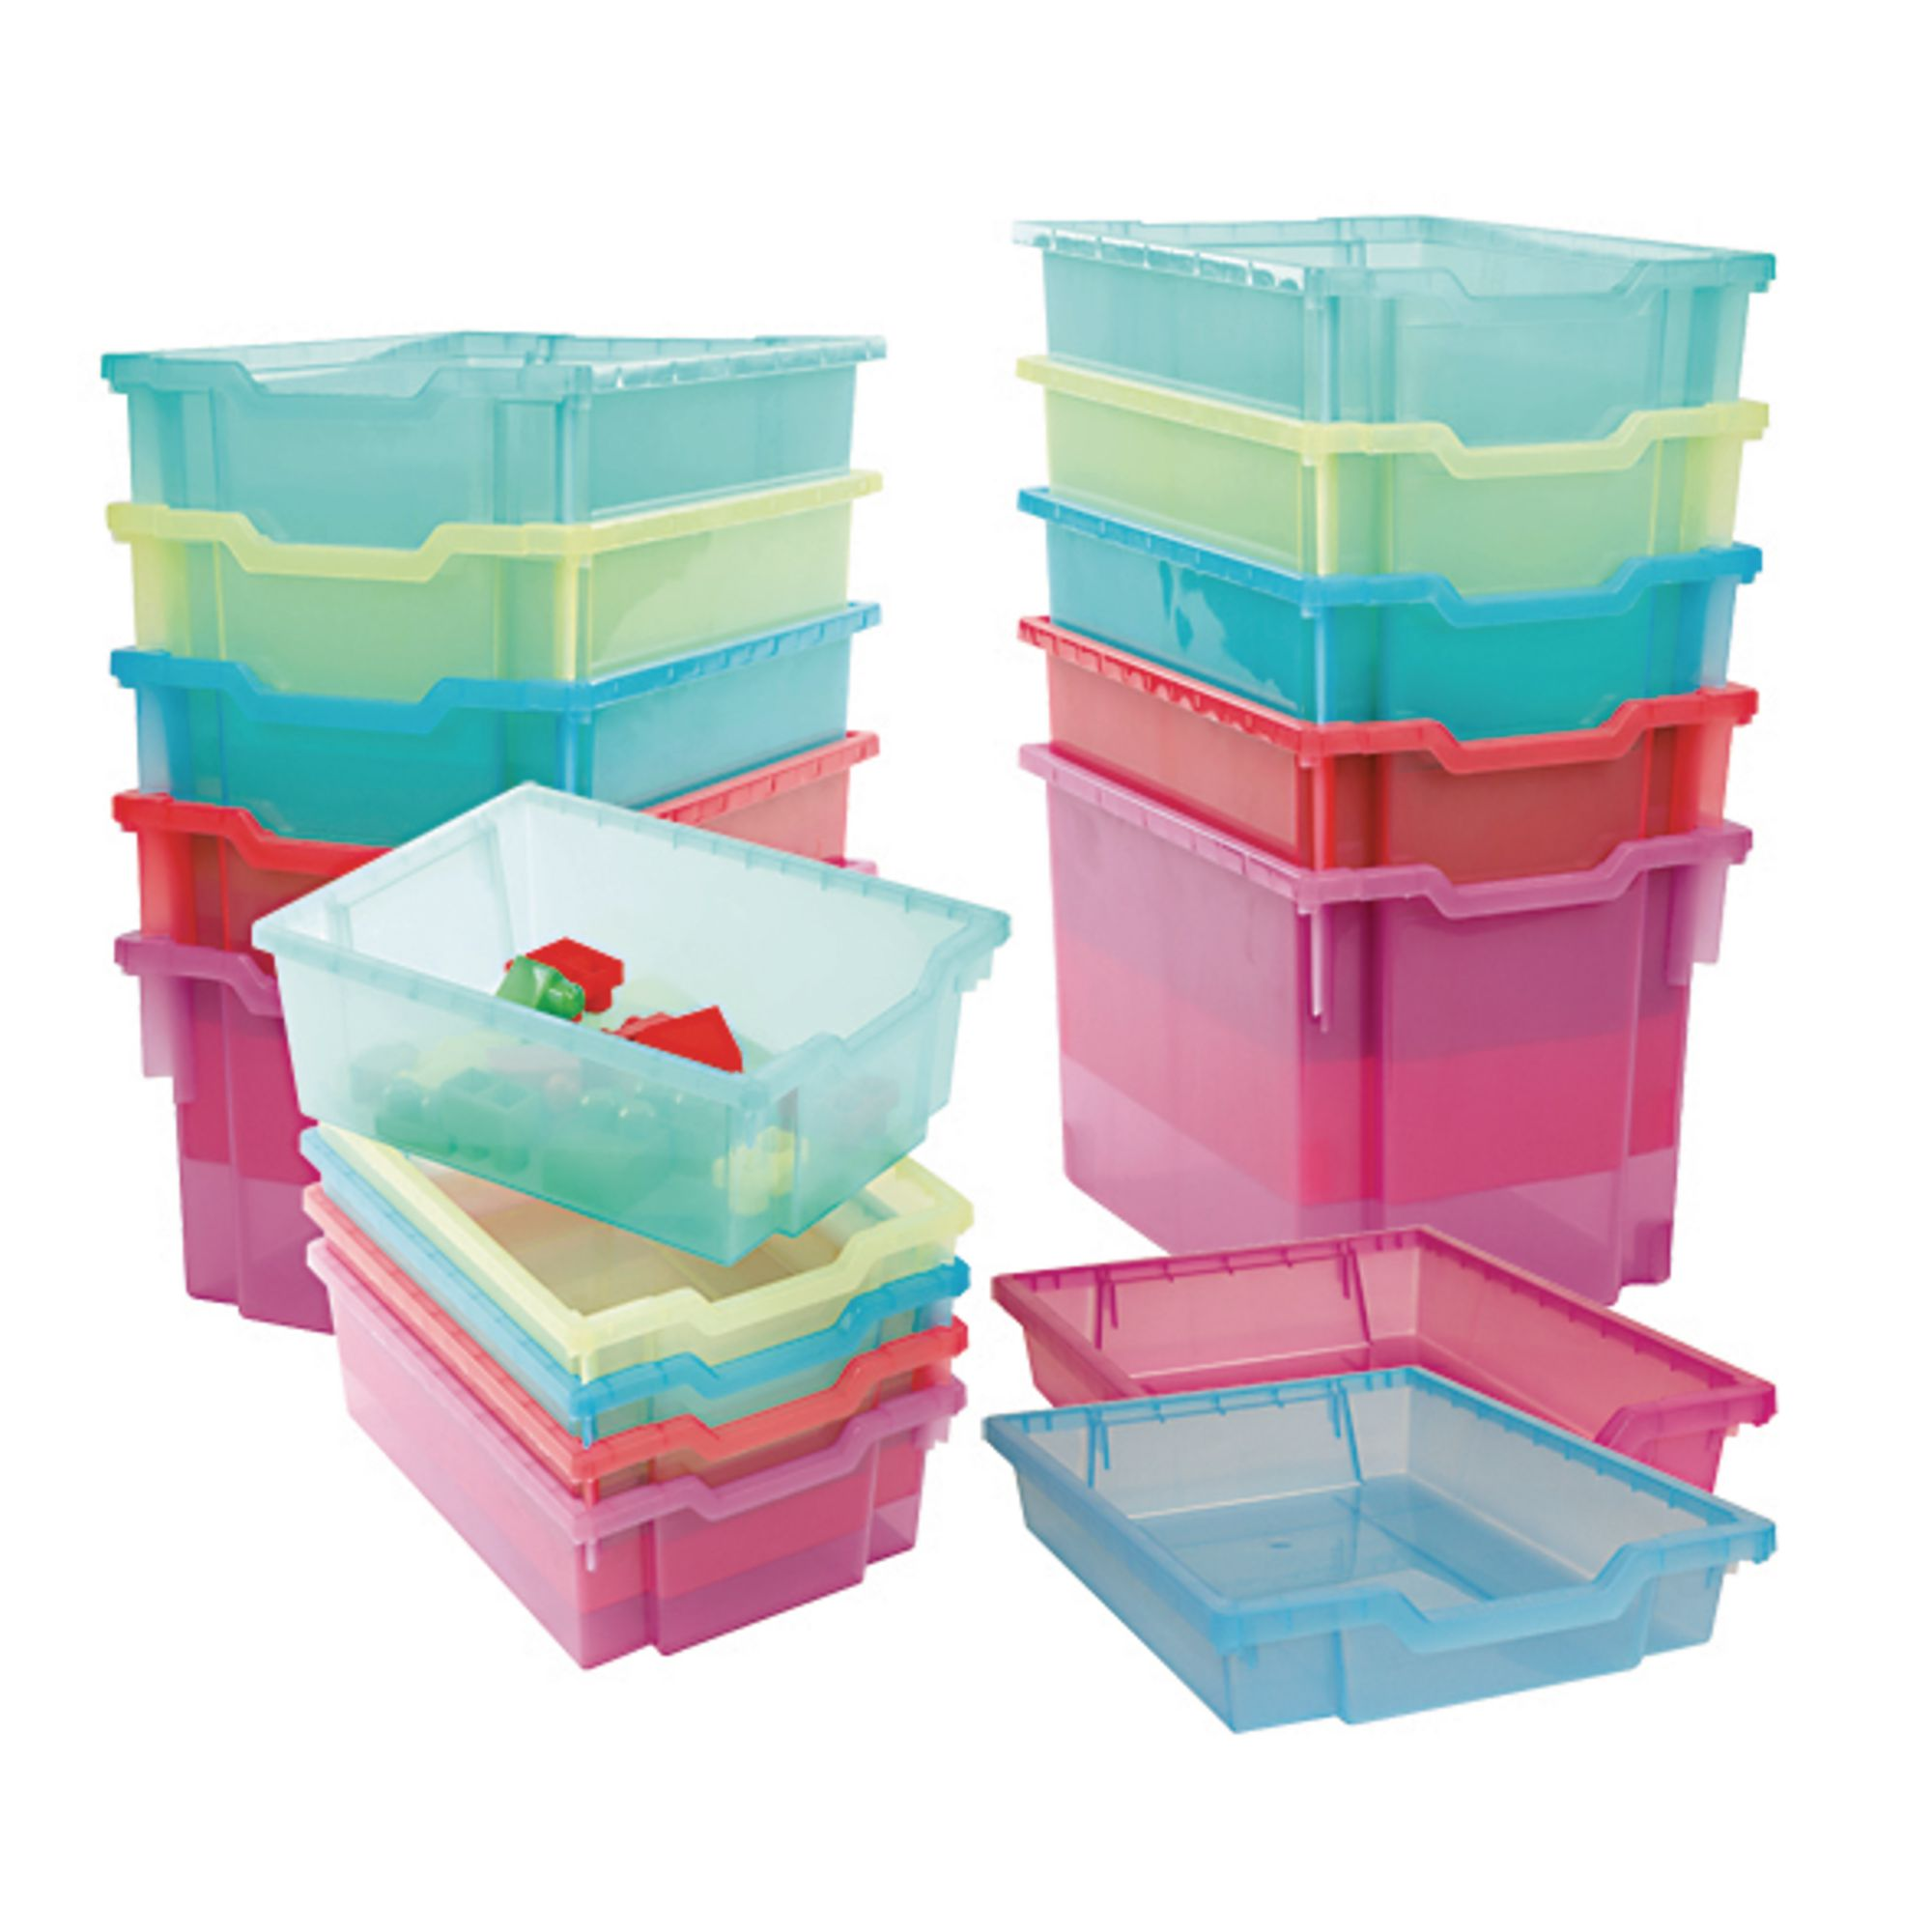 Gratnells Shallow Jelly Storage Tray - Grape Jelly  sc 1 st  Product | GLS Educational Supplies & Product | GLS Educational Supplies